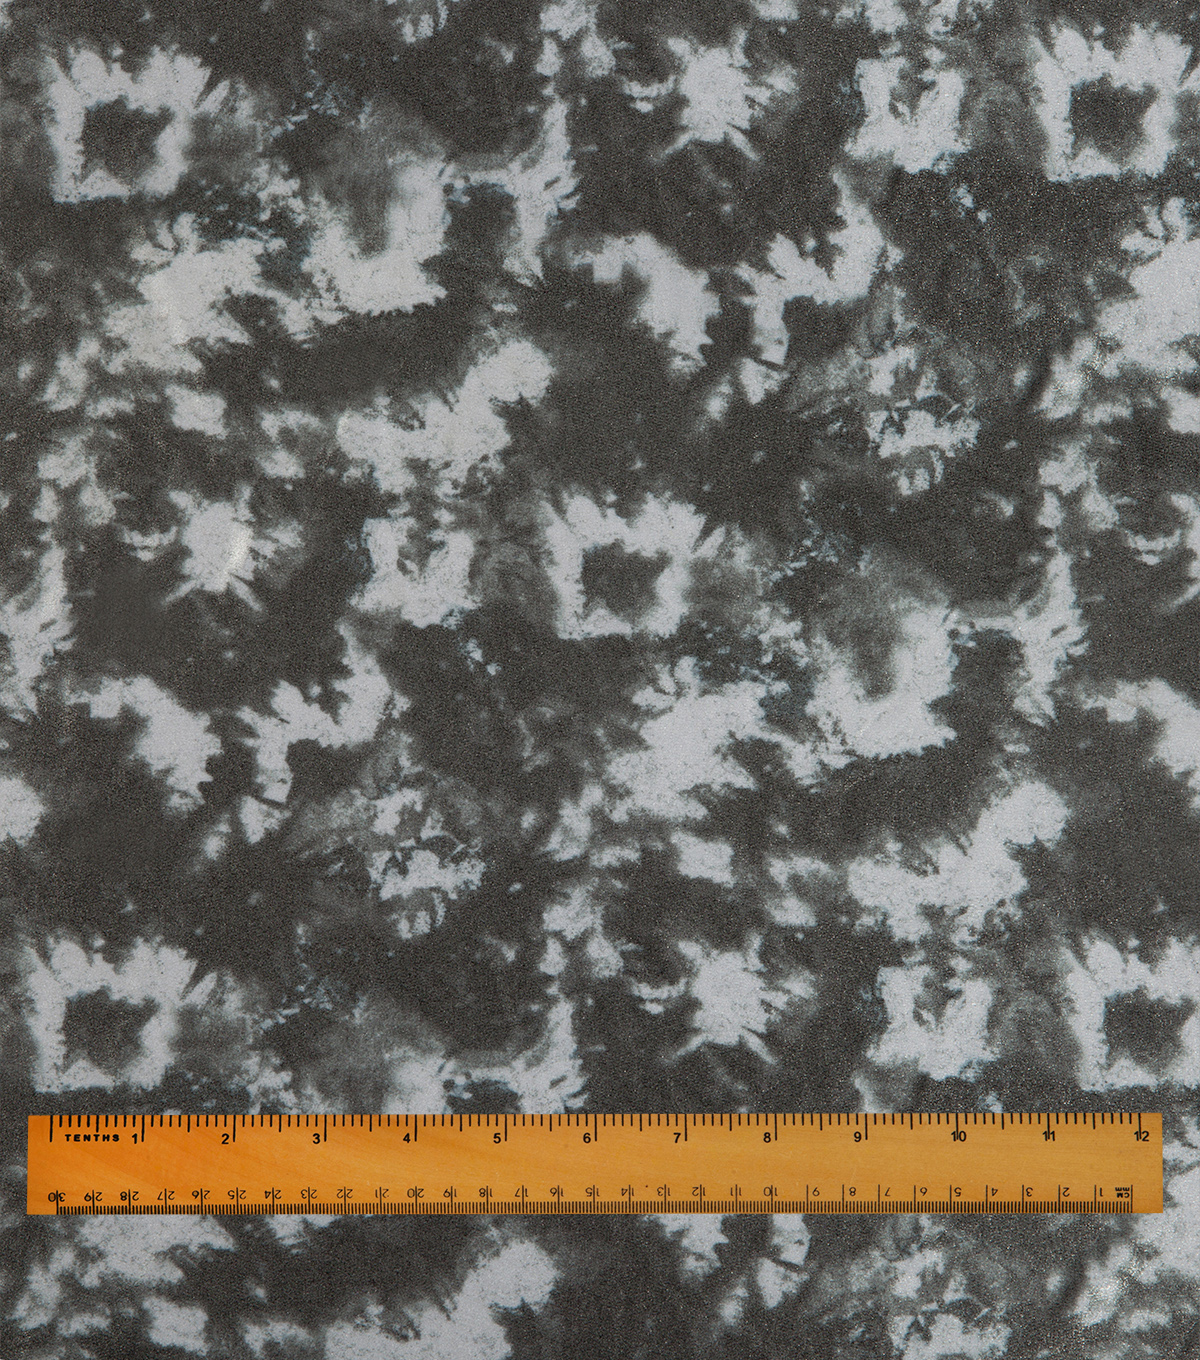 Performance Stretch Fabric-Shimmer Tie Dye Black White